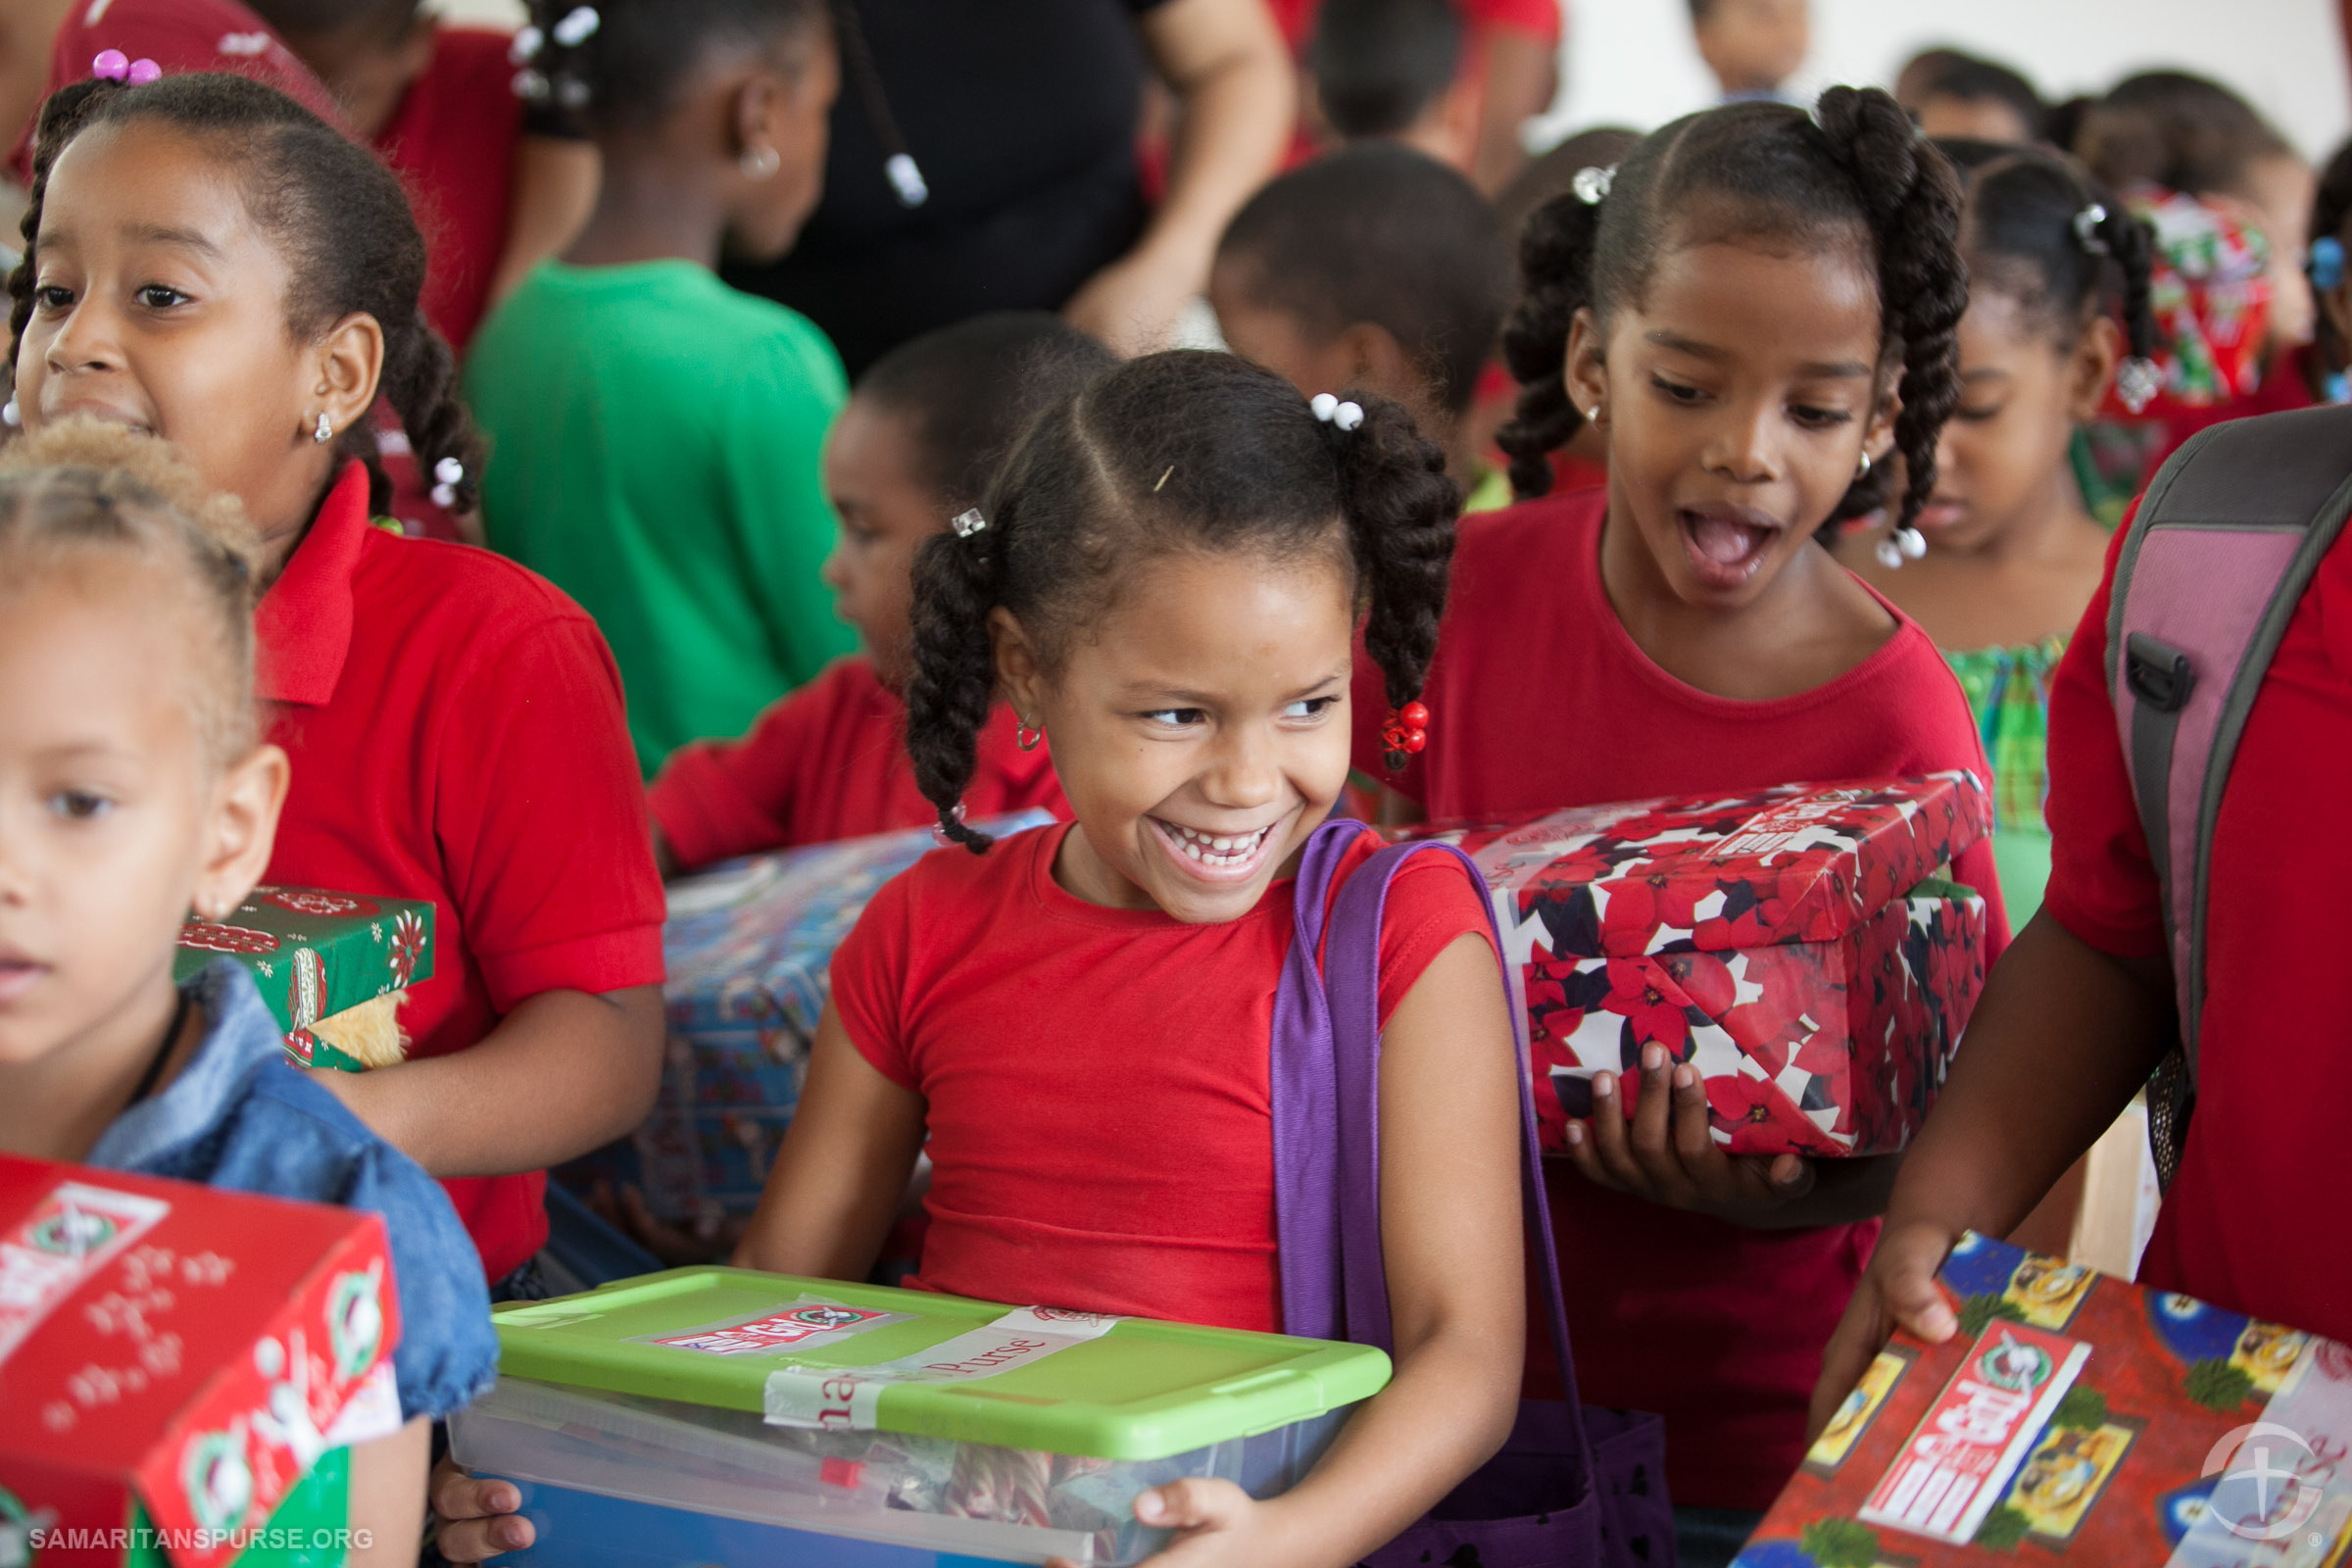 100 millionth shoebox delivery in Dominican Republic.